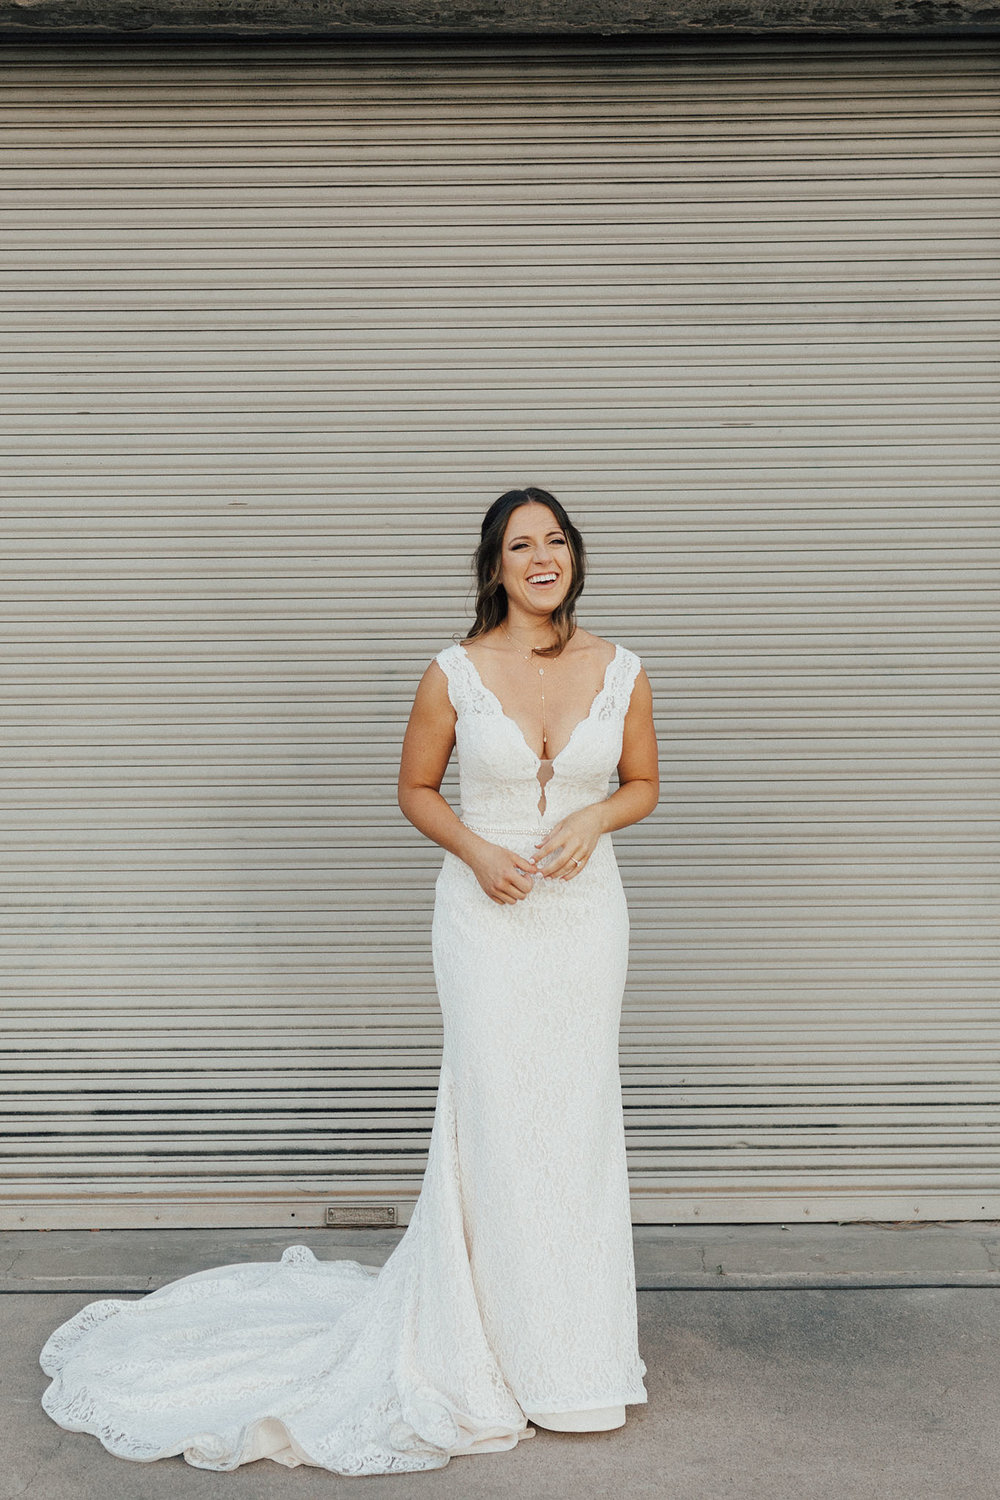 phoenix-arizona-croft-downtown-adventure-wedding-photographer-65